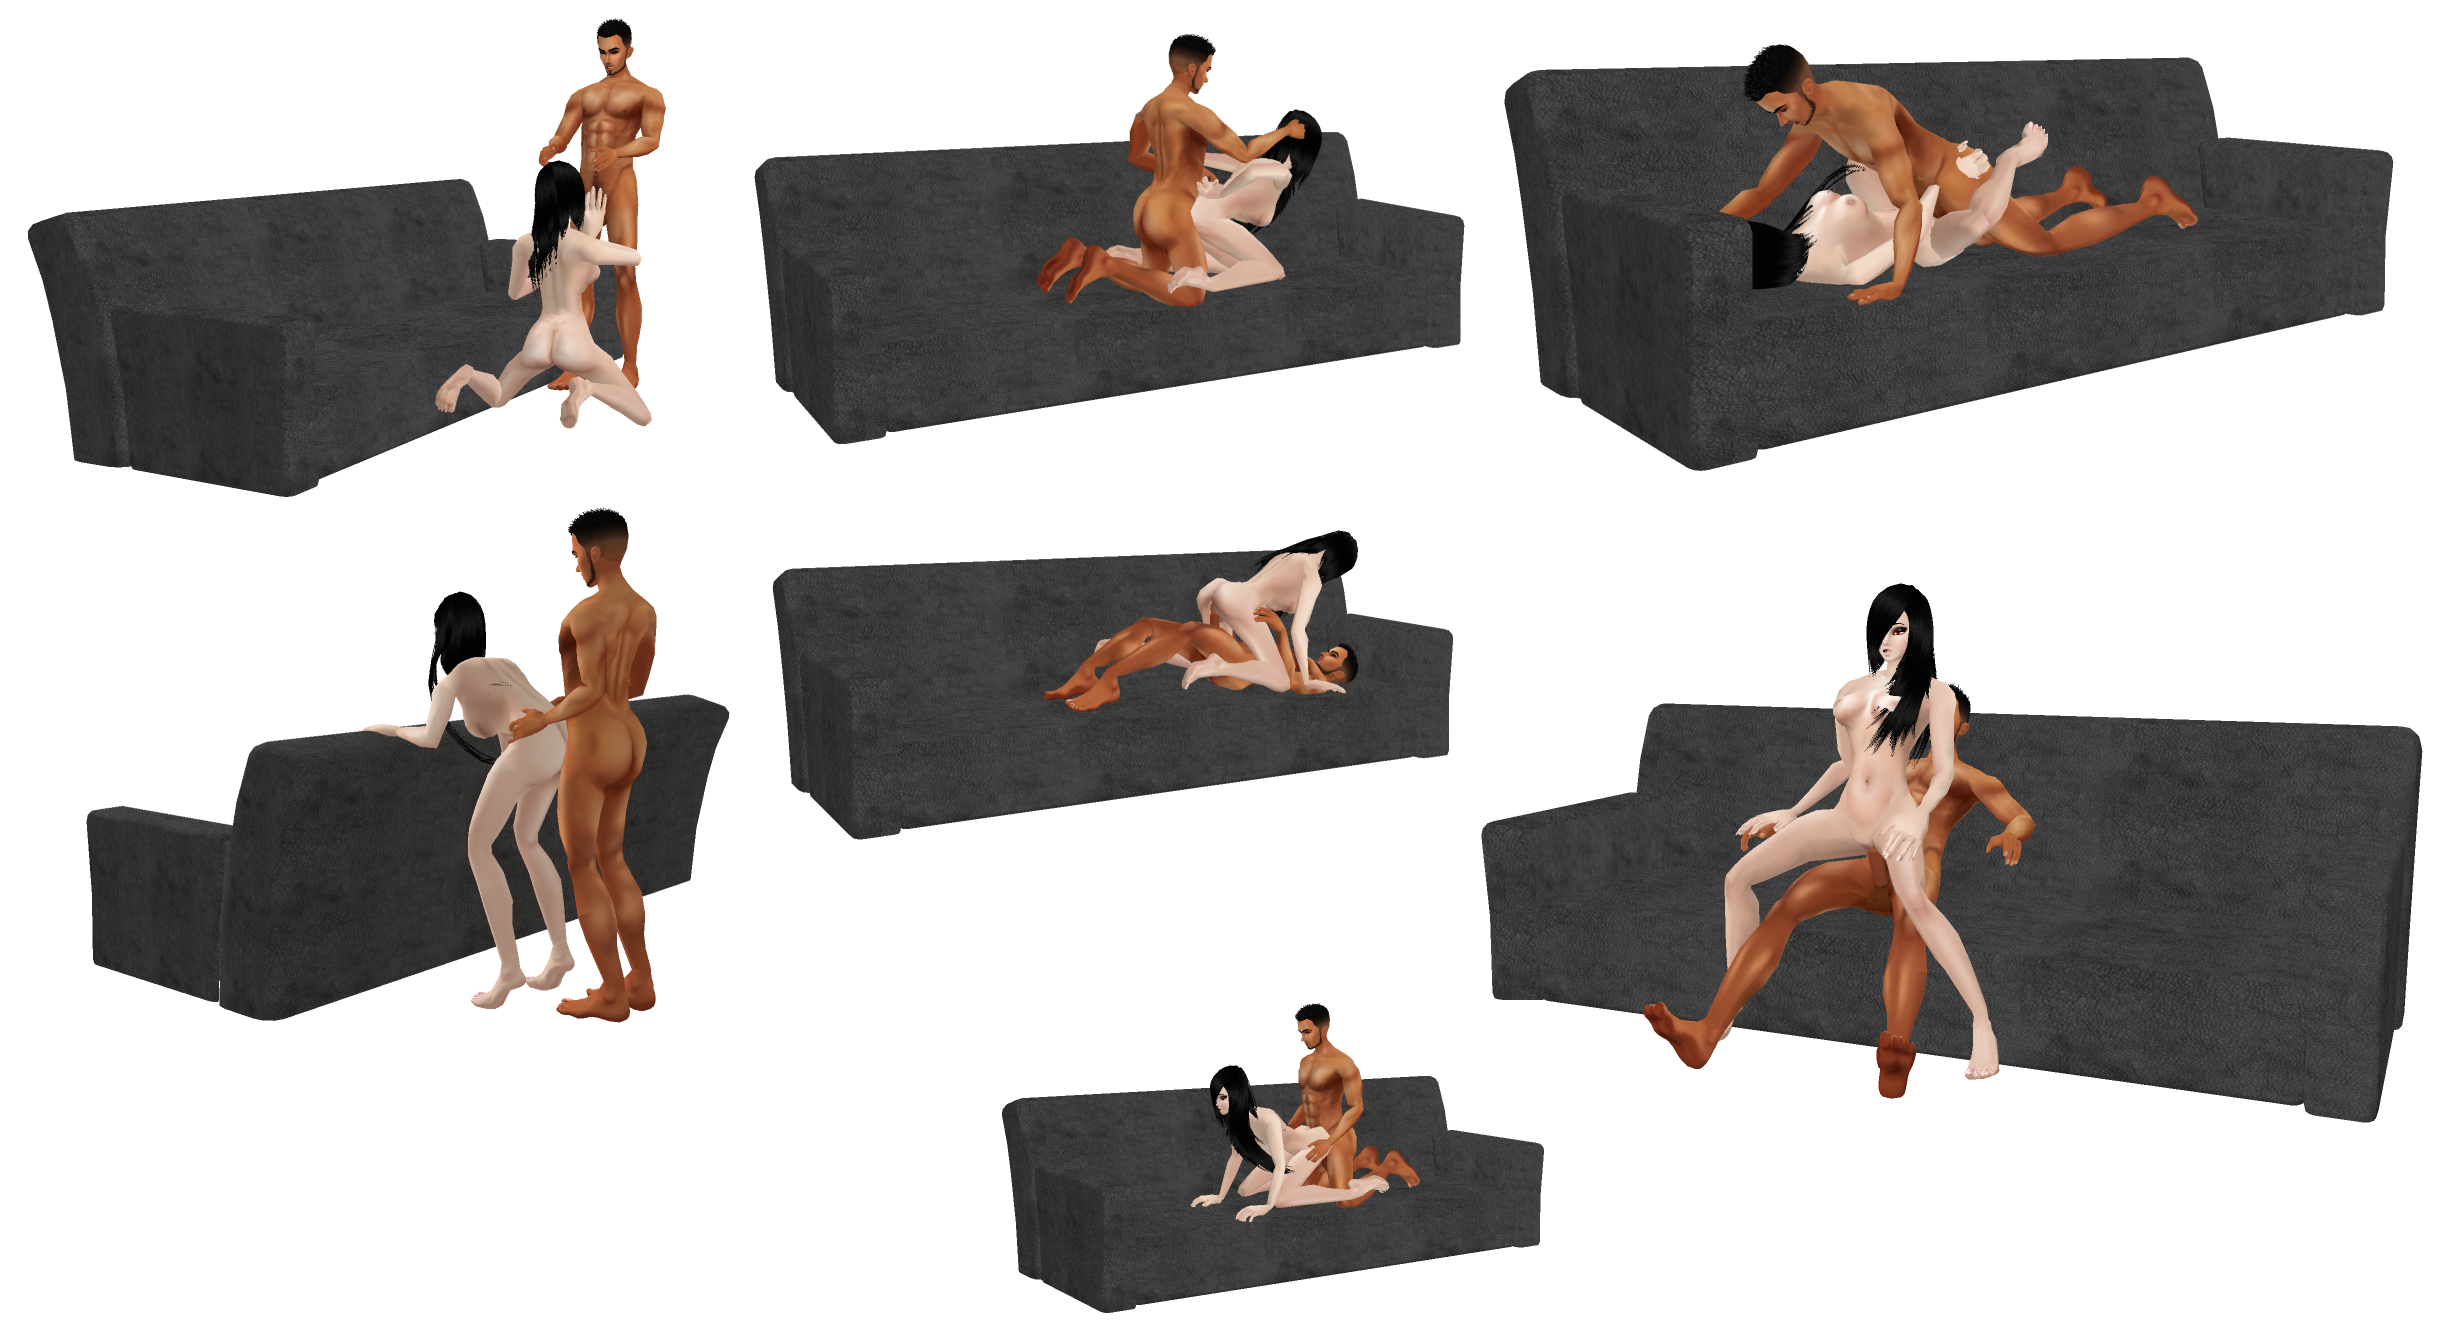 Couch position sex